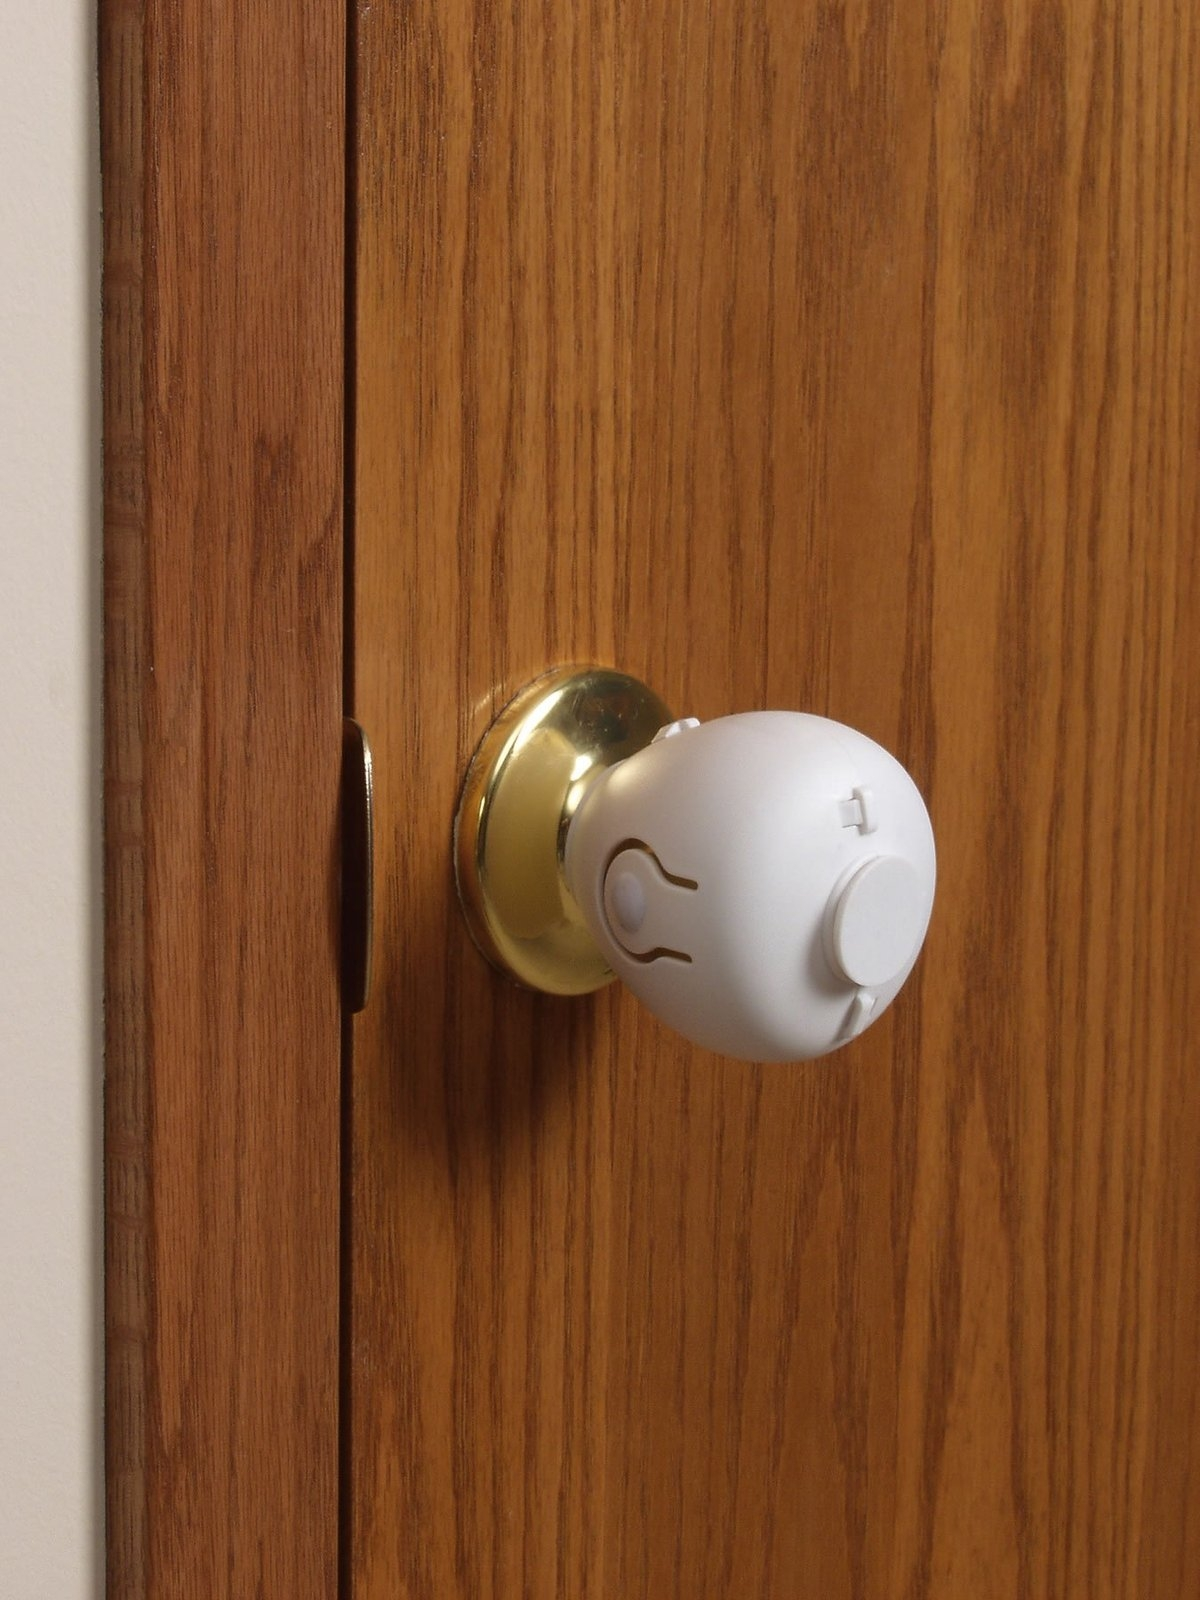 Rubber Door Knob Covers Toddler